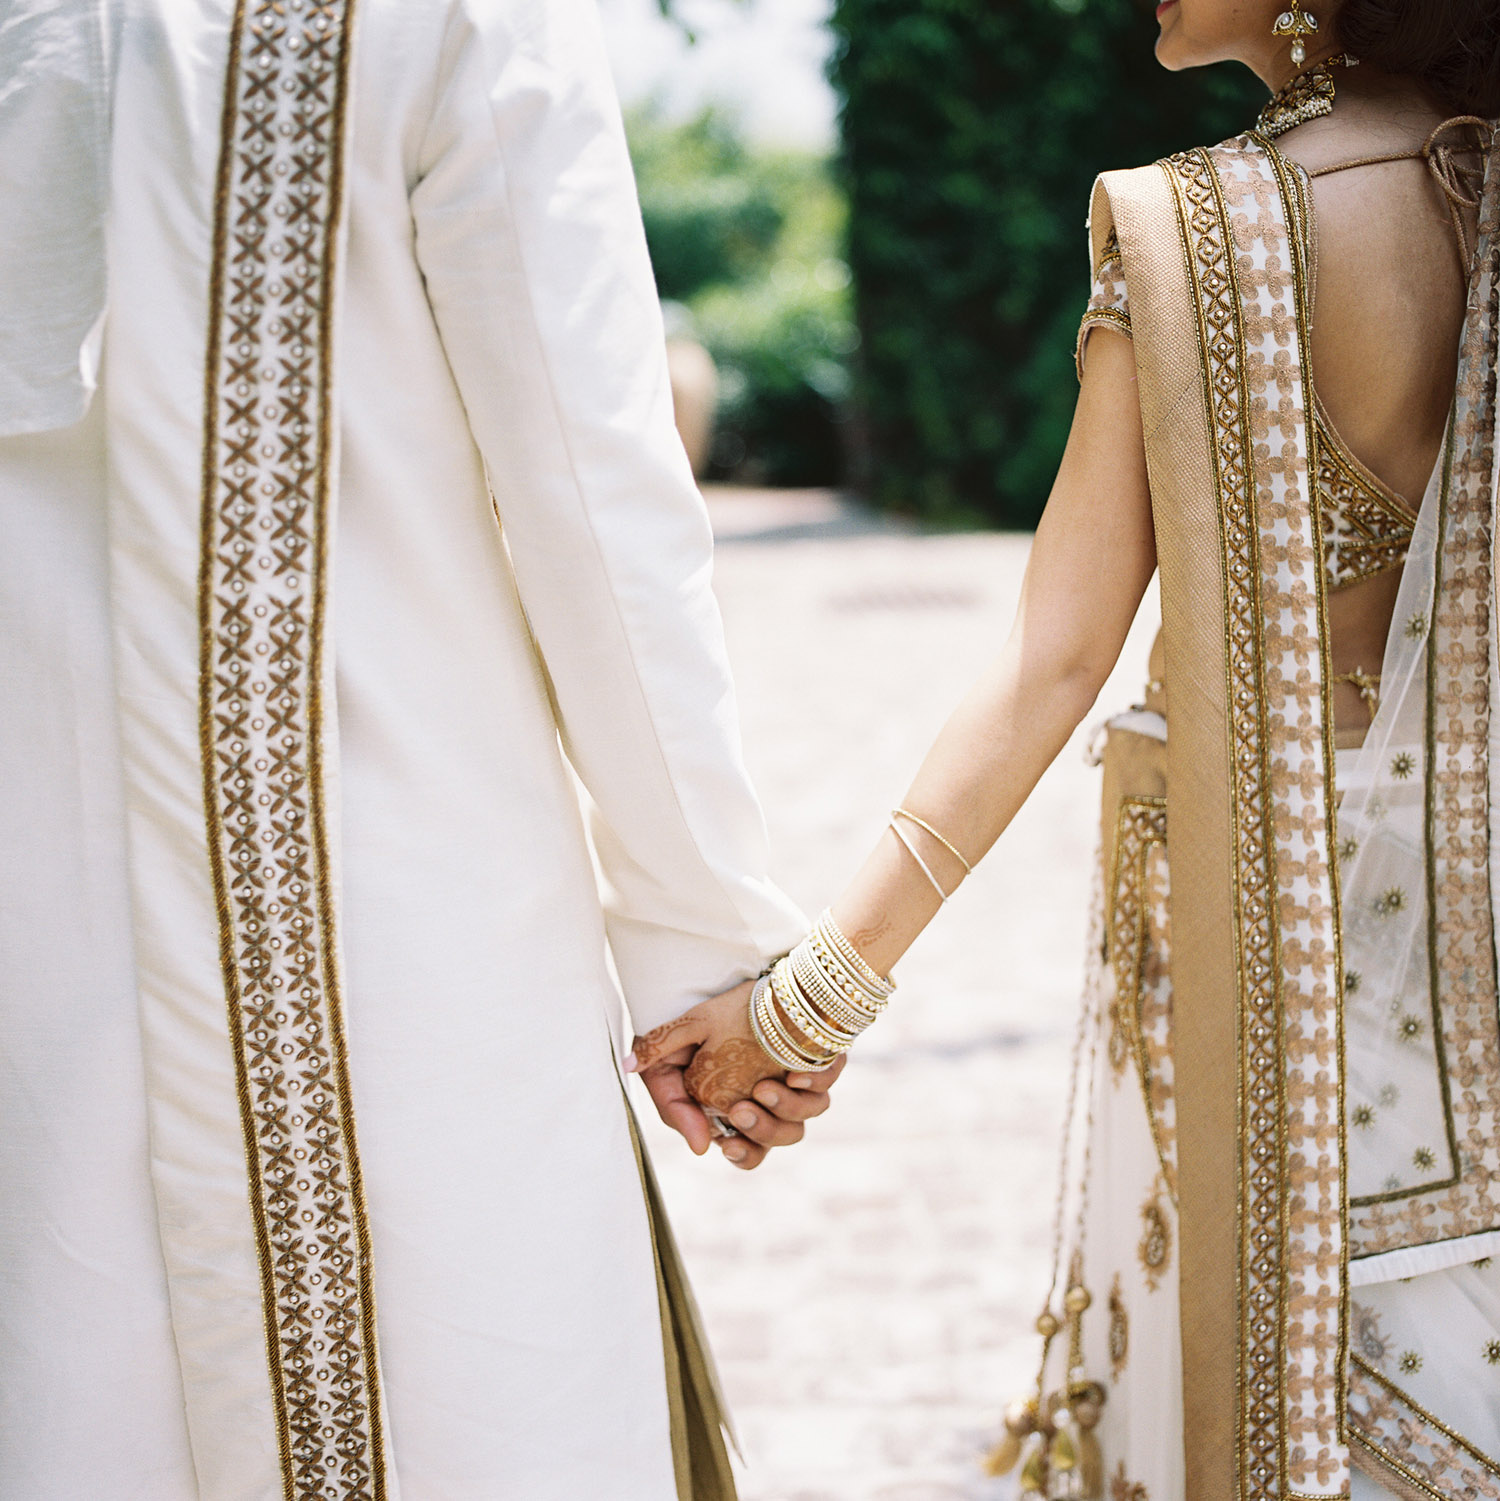 Sejal-Narayan-Wedding-Film-367.jpg